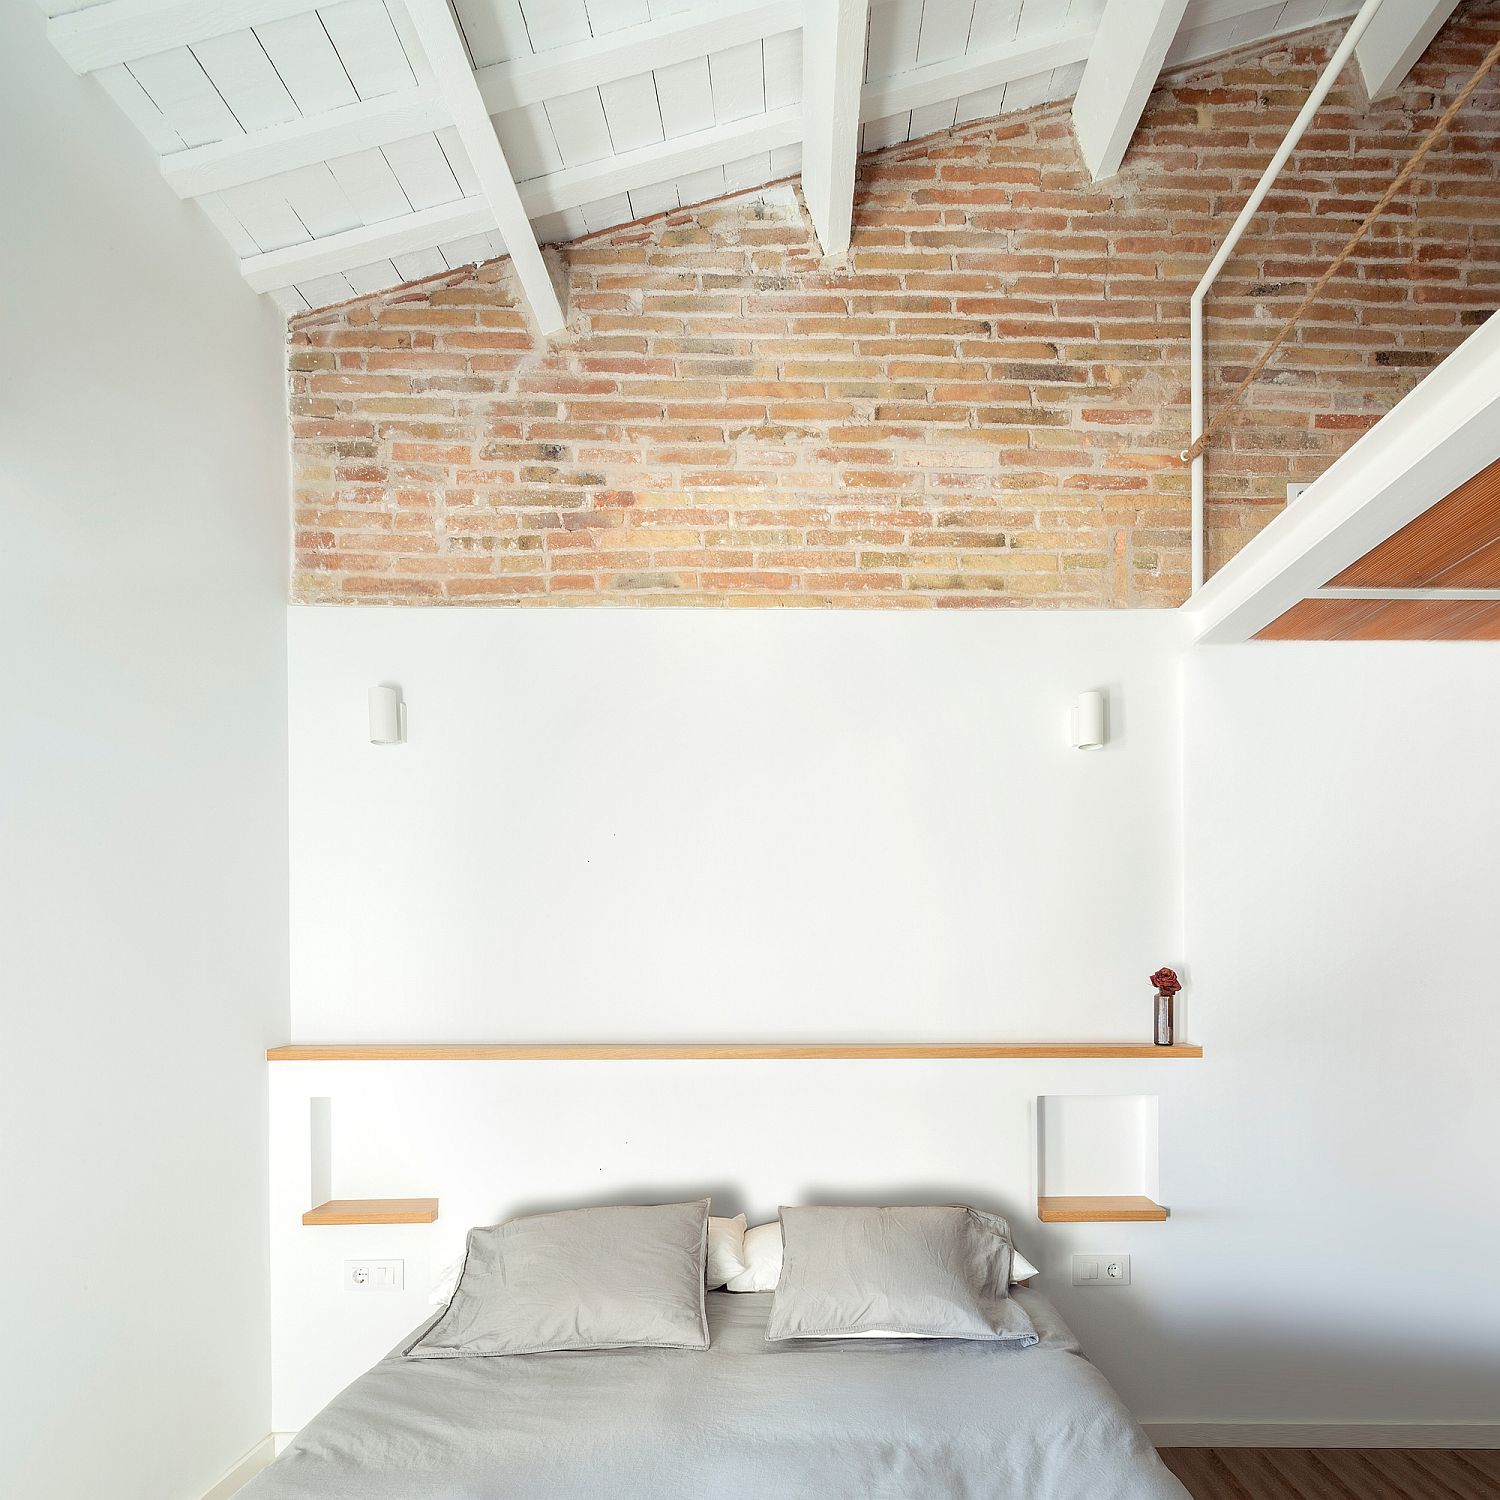 Wall painted in white along with ceiling beams and brick wall section for the small bedroom